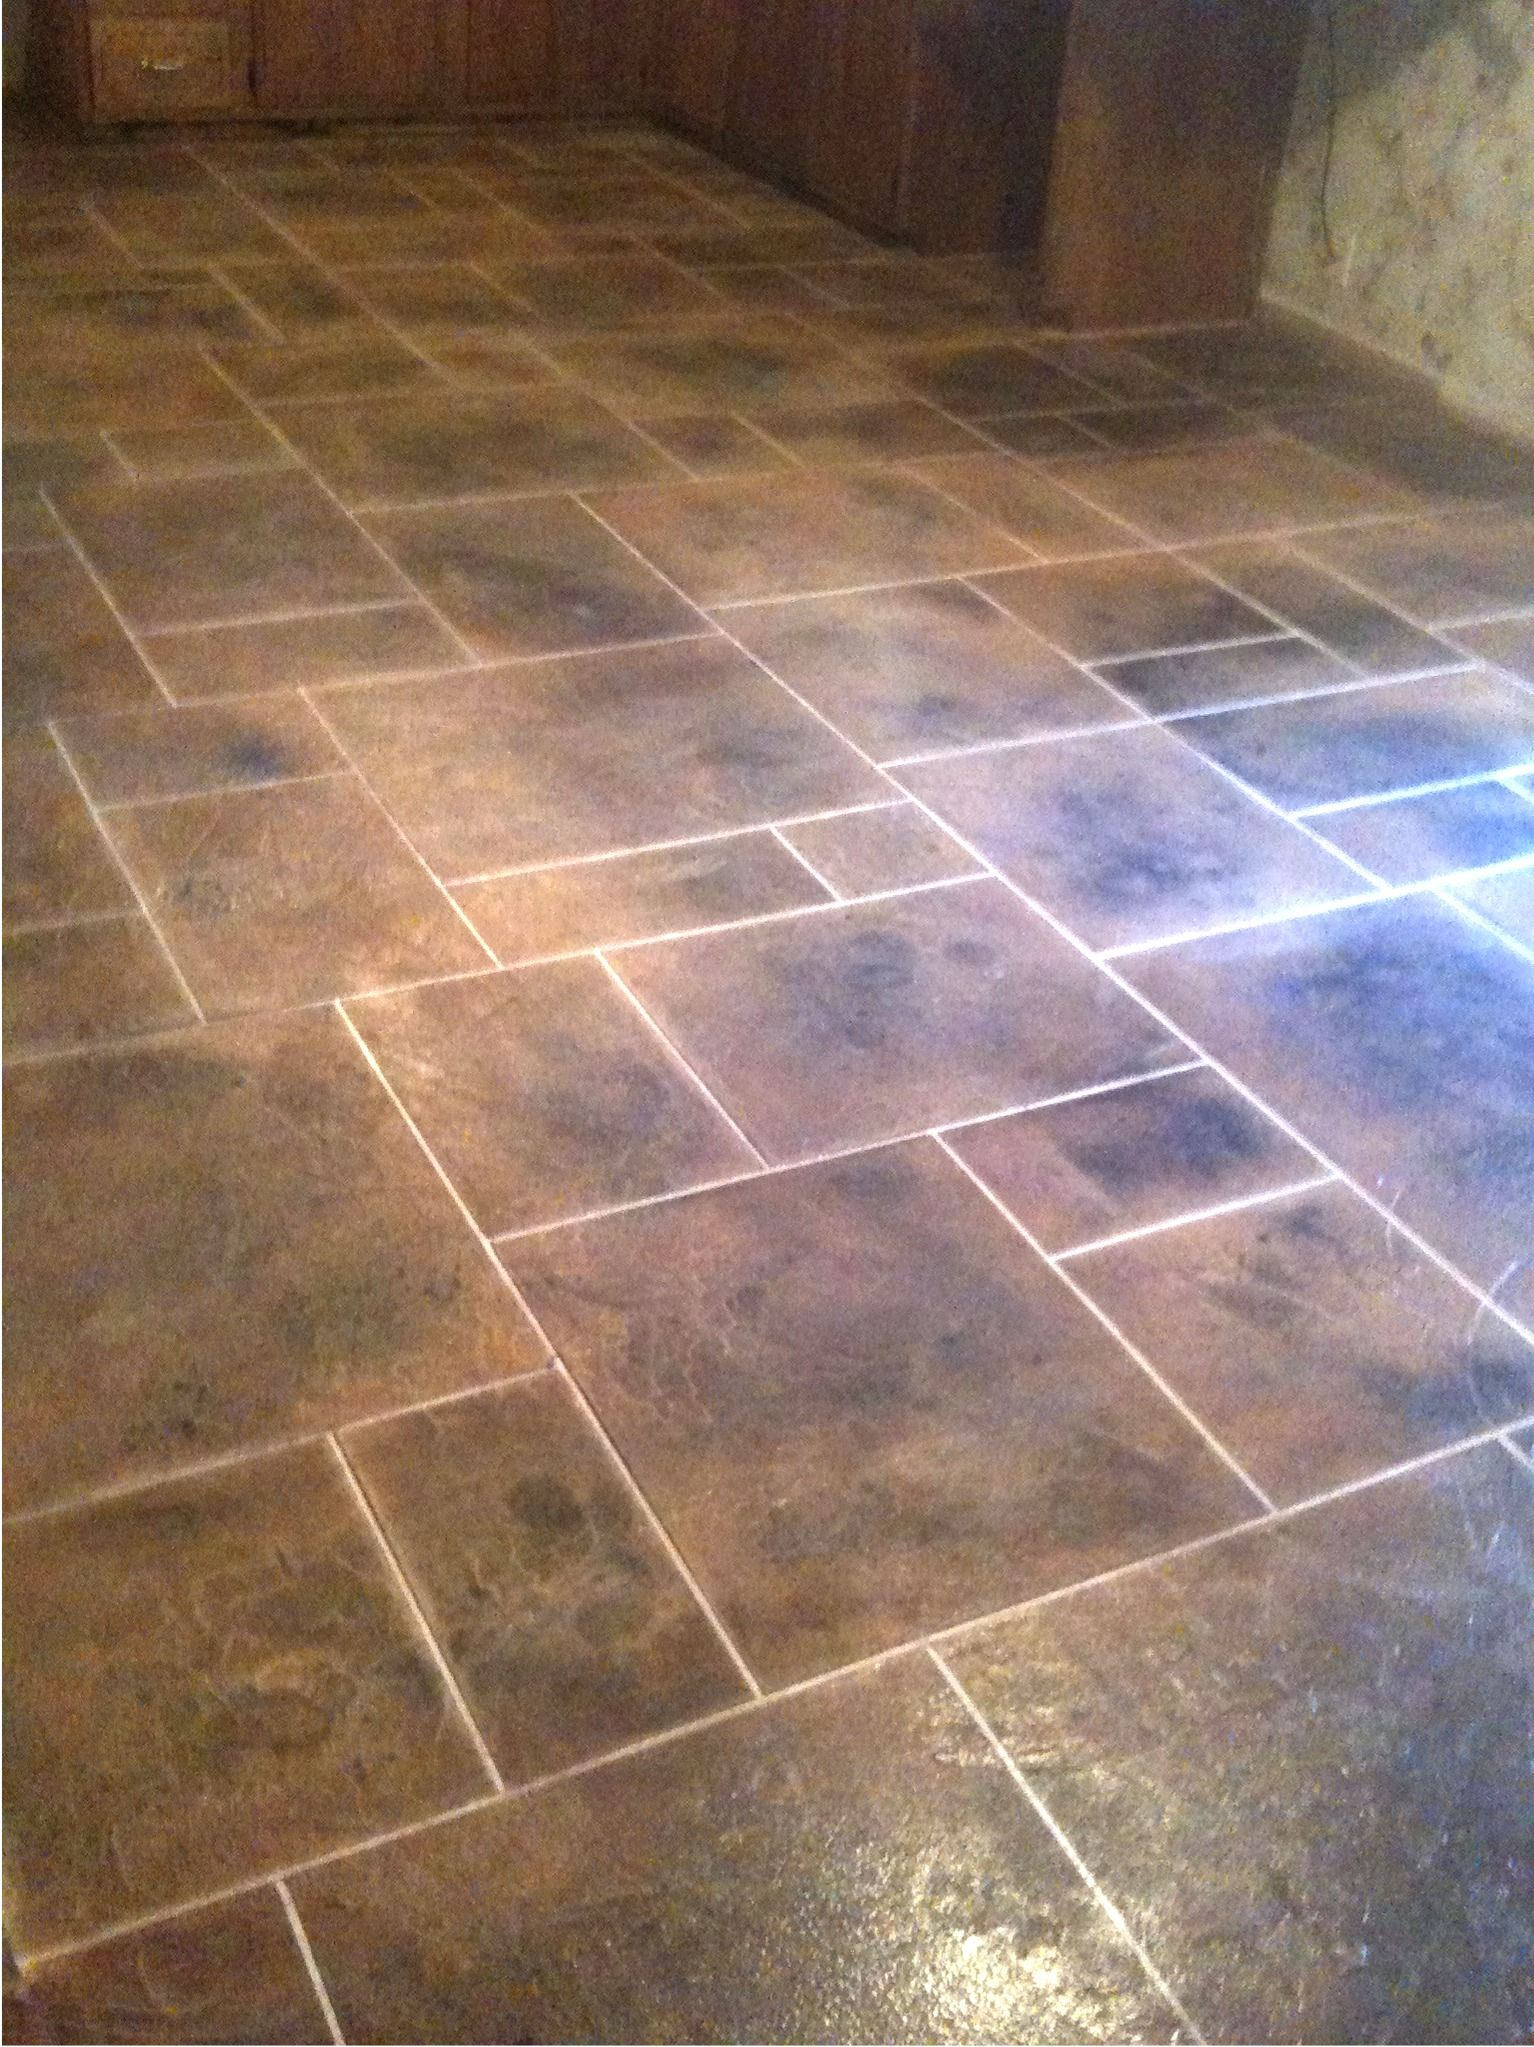 Kitchen floor tile patterns concrete overlay random for Floor tiles design